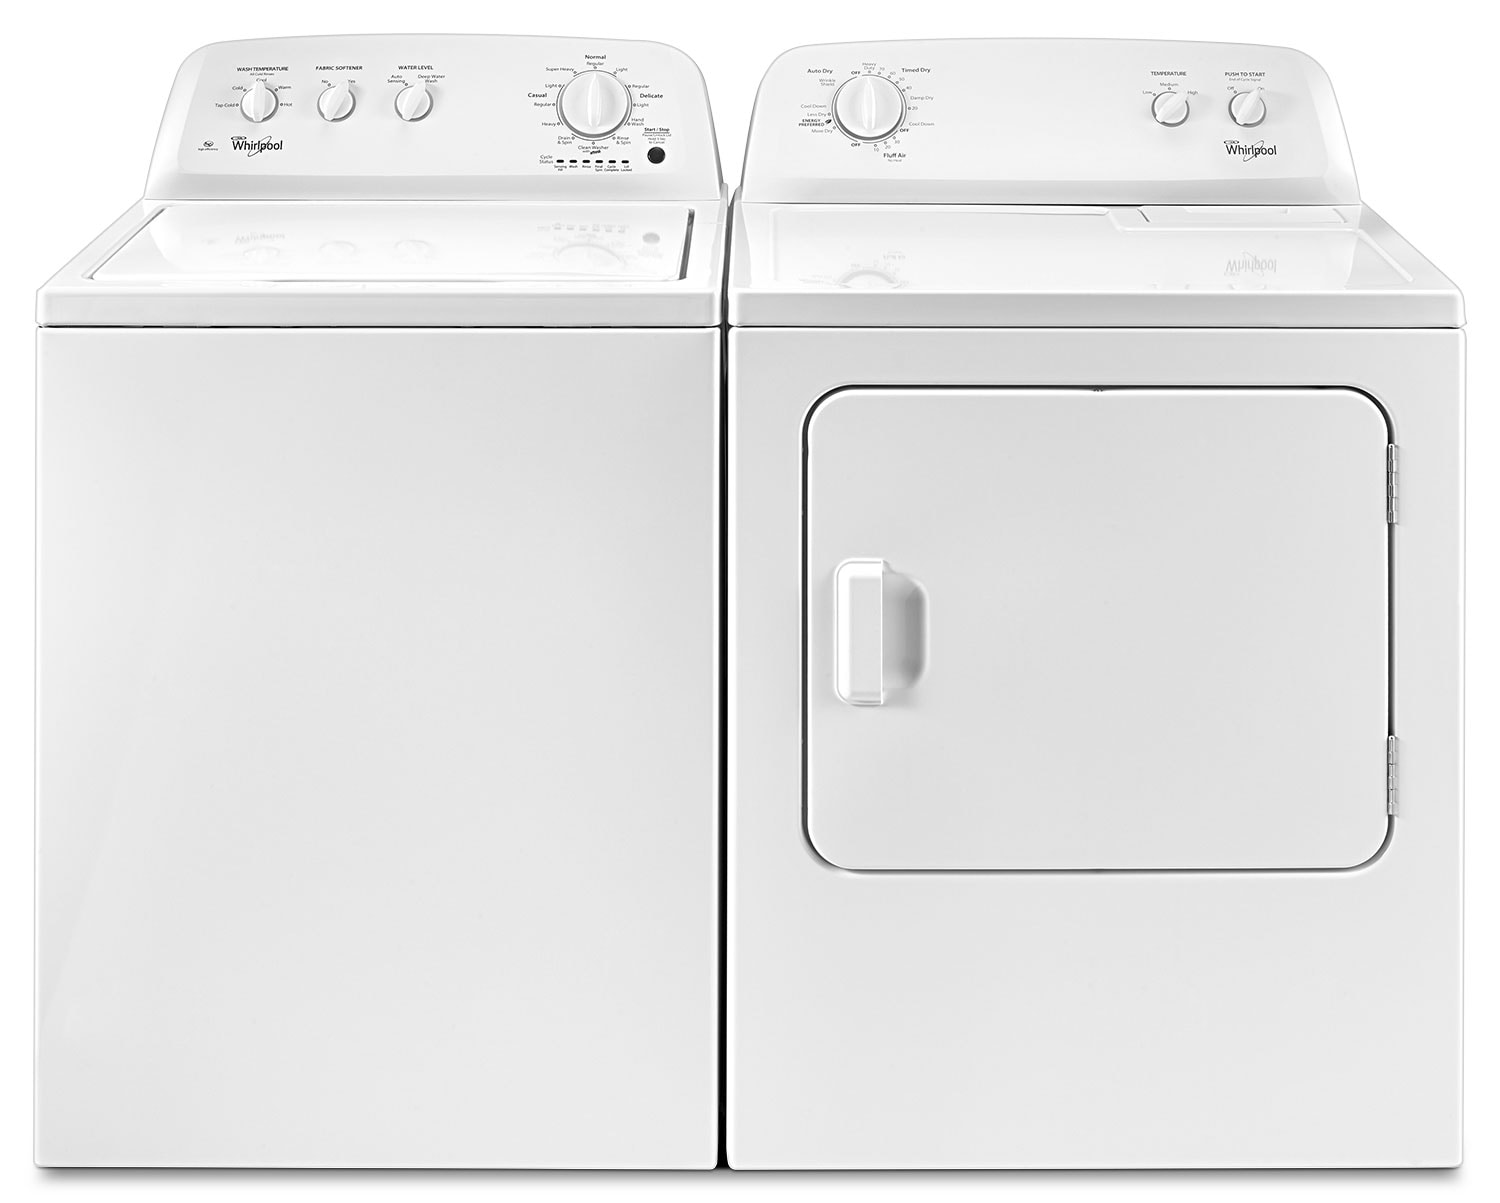 Washers and Dryers - Whirlpool 4.0 Cu. Ft. Top-Load Washer and 7.0 Cu. Ft. Electric Dryer – White